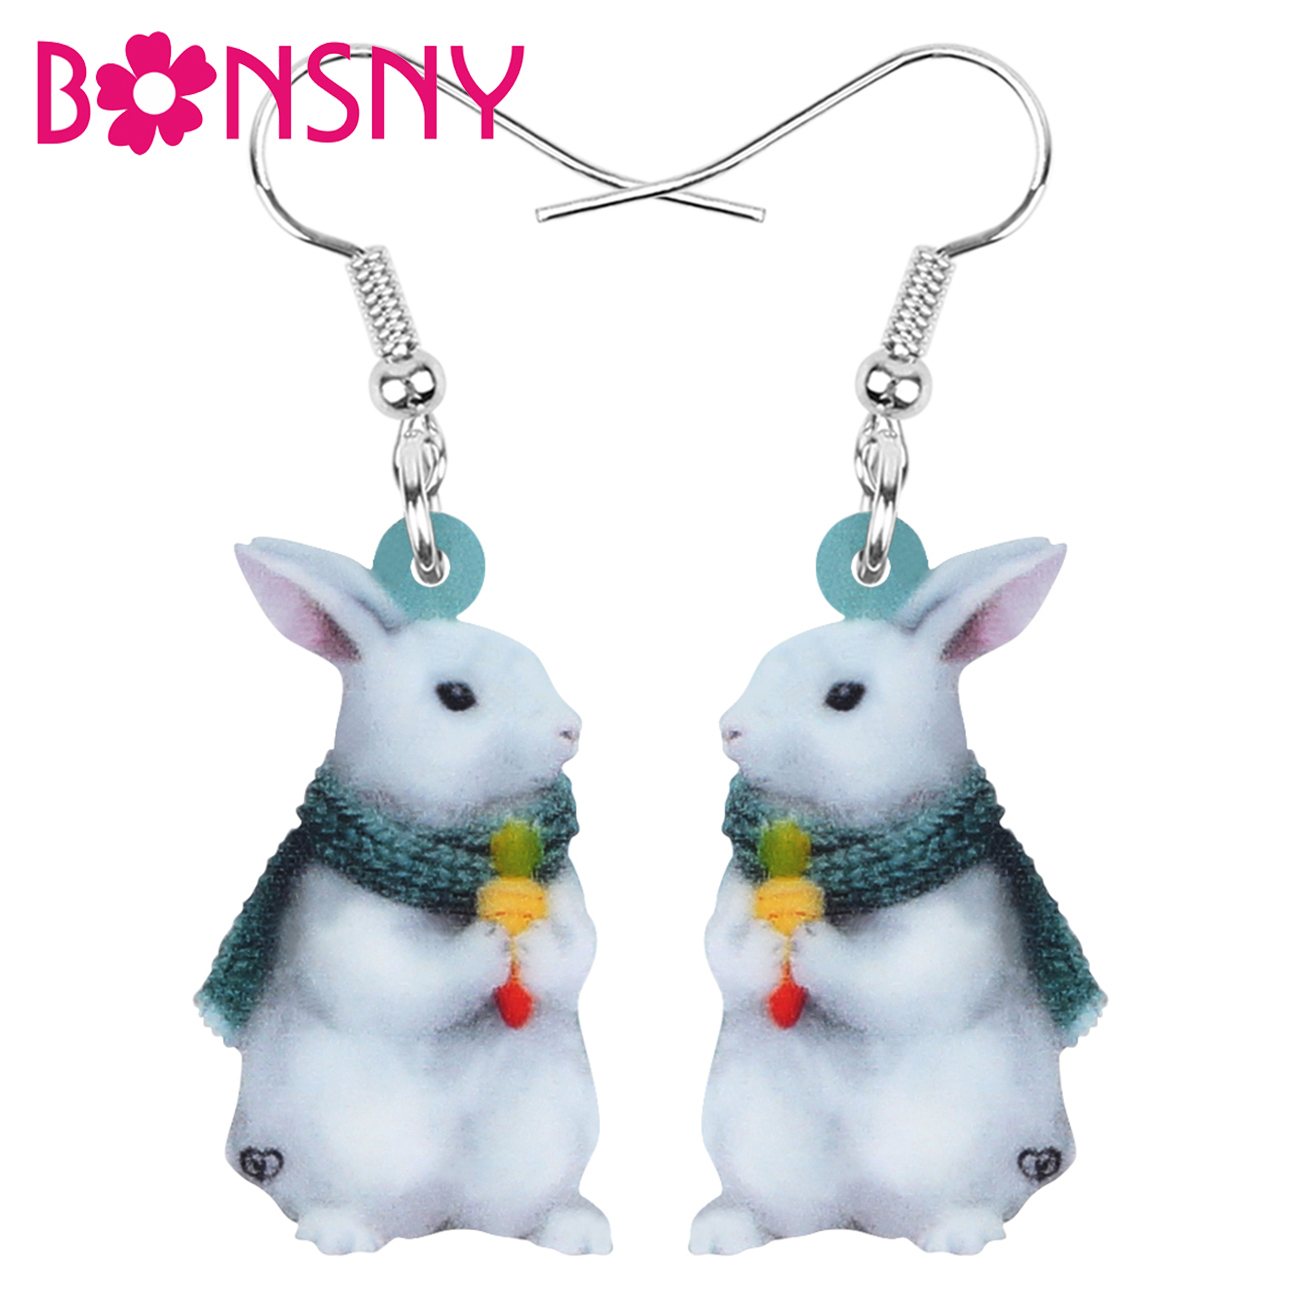 Bonsny Acrylic White Easter Hare Rabbit Bunny Pet Earrings Print Animal Dangle Drop Jewelry For Women Girl Charm Gift Accessory